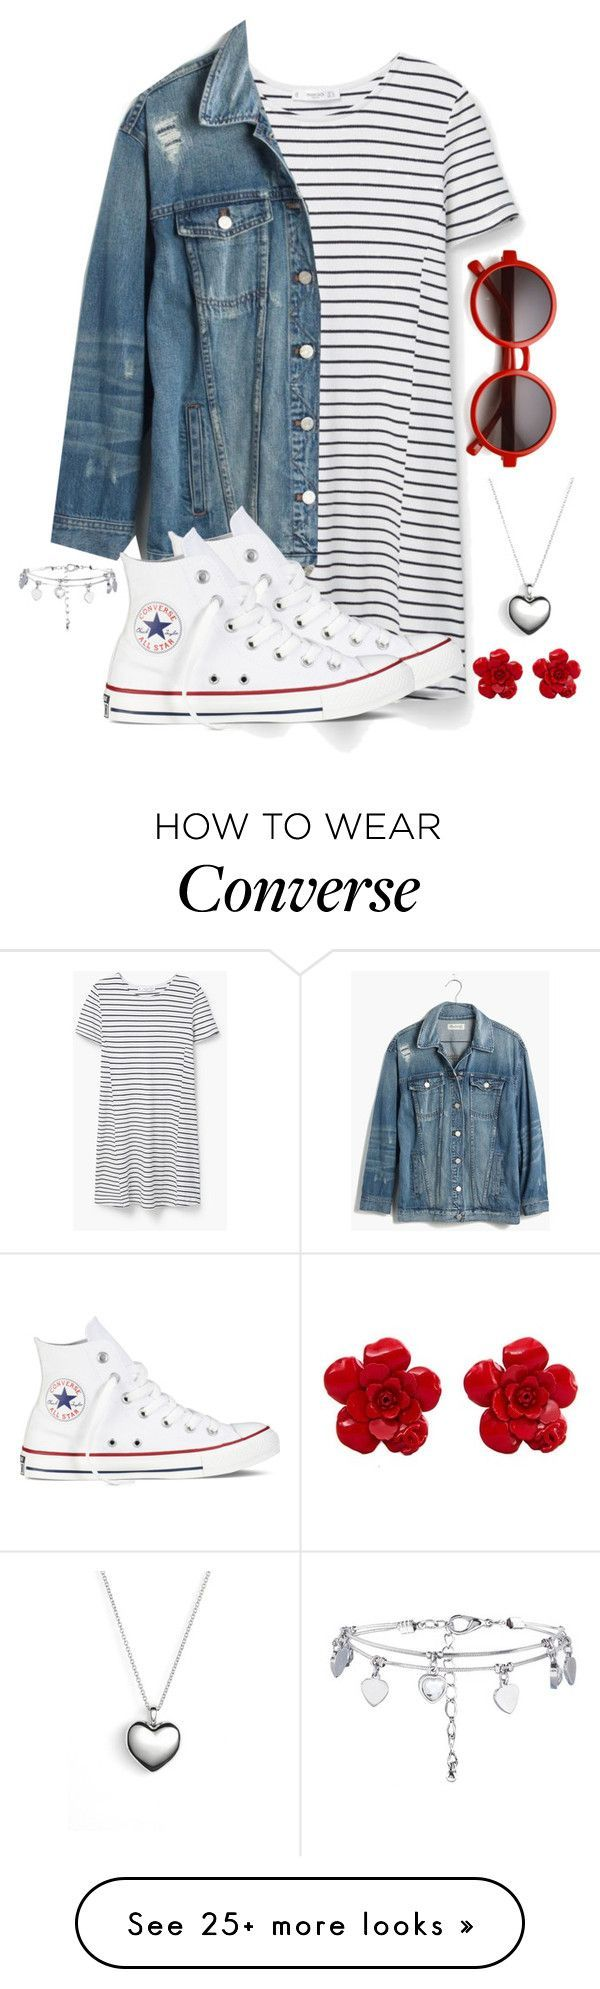 """This is totally my style"" by galaxygirl12427 on Polyvore featuring MANGO, Madewell, Converse, Pandora, Chanel, women's clothing, women, female, woman and misses - womens discount clothing, womens trendy clothing, womens fasion clothing"